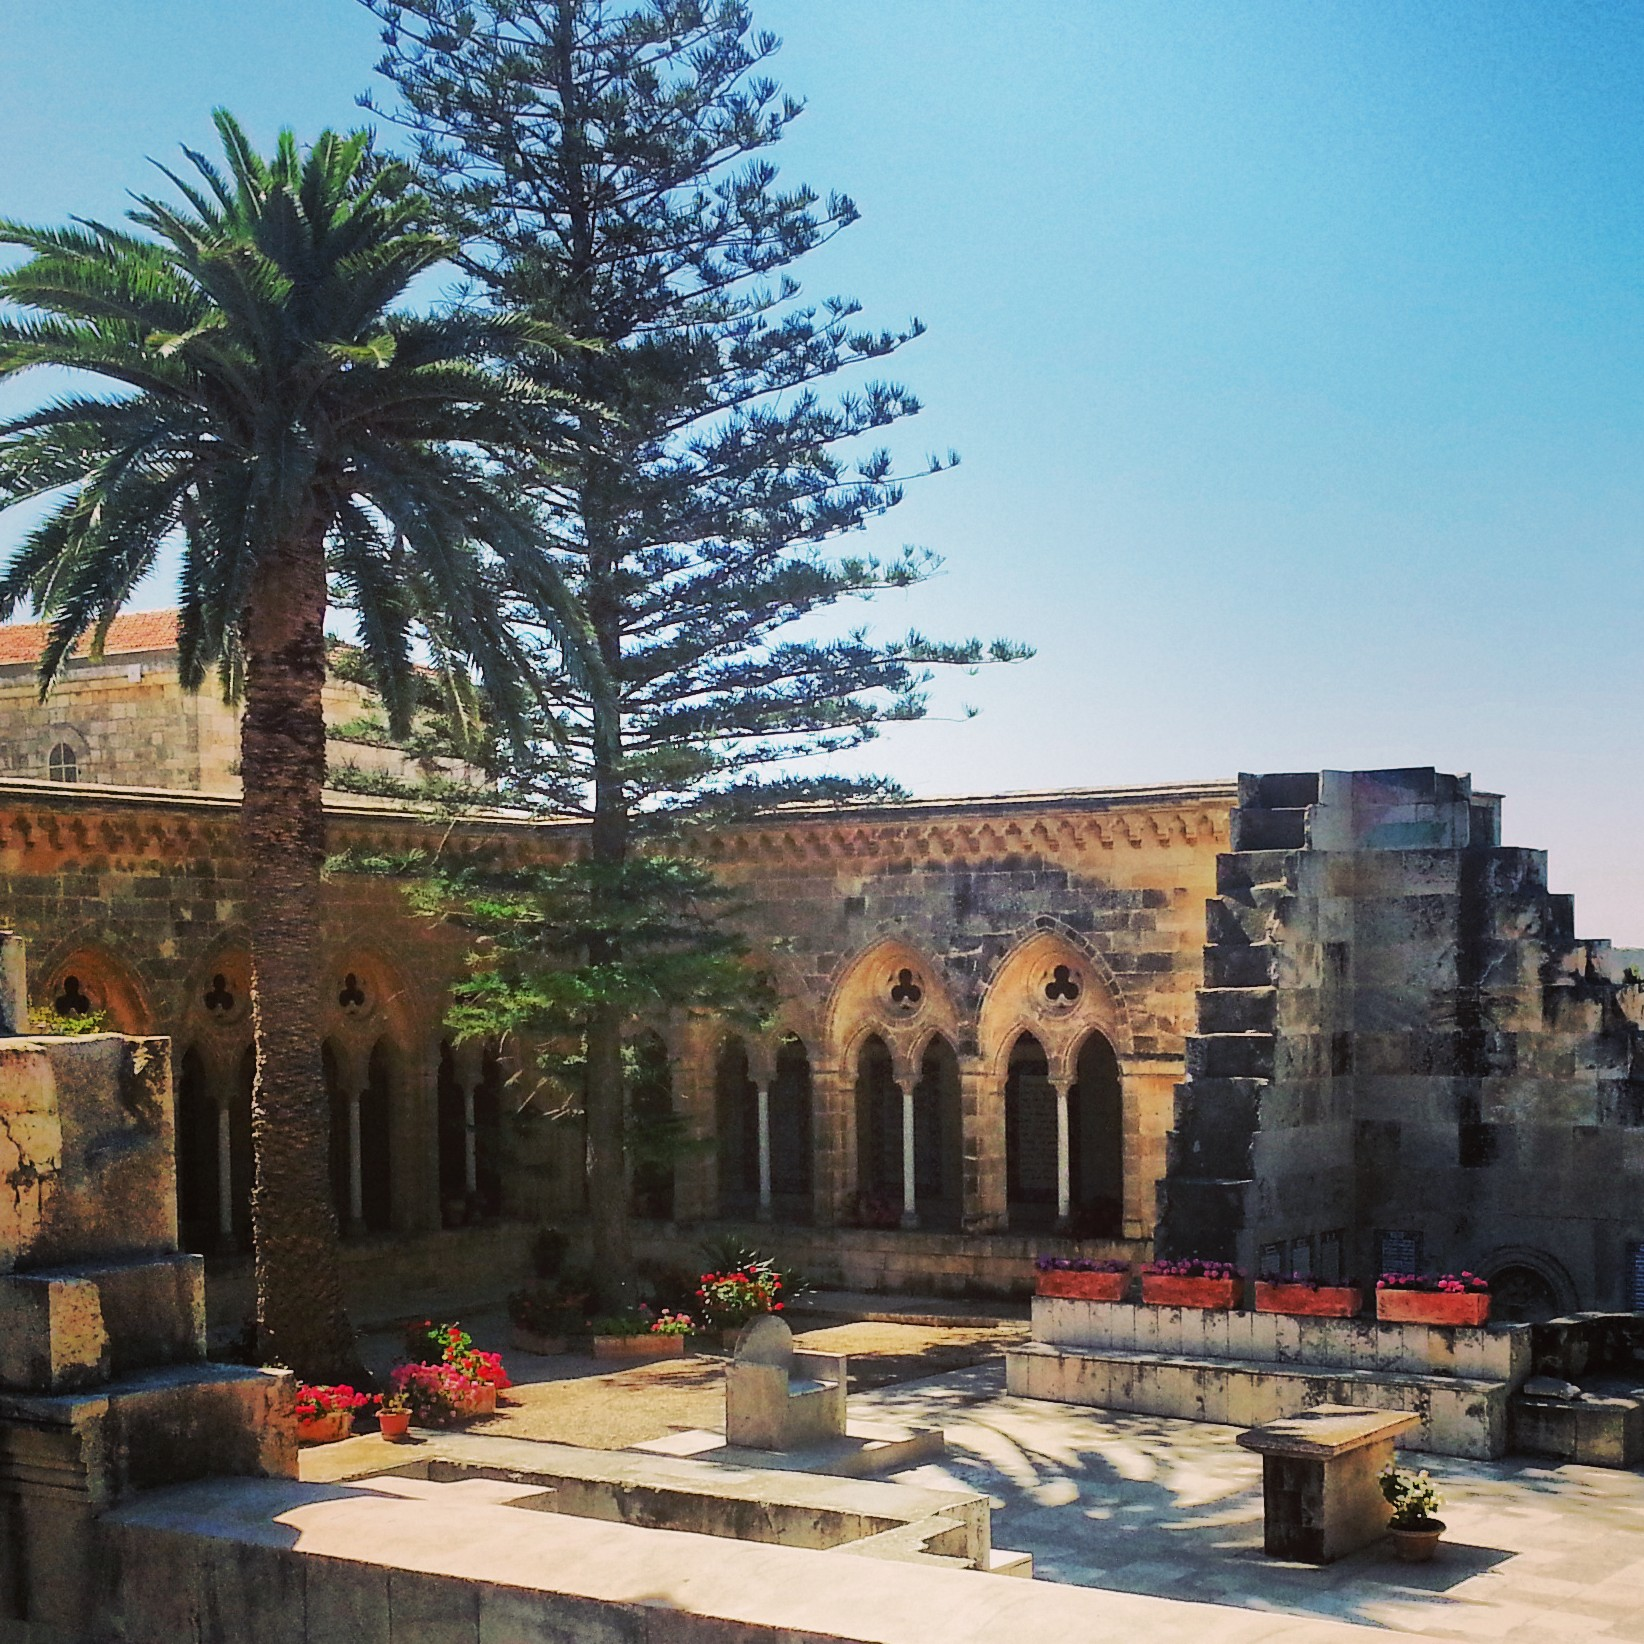 Church of the Pater Noster (Eleona) on the Mount of Olives